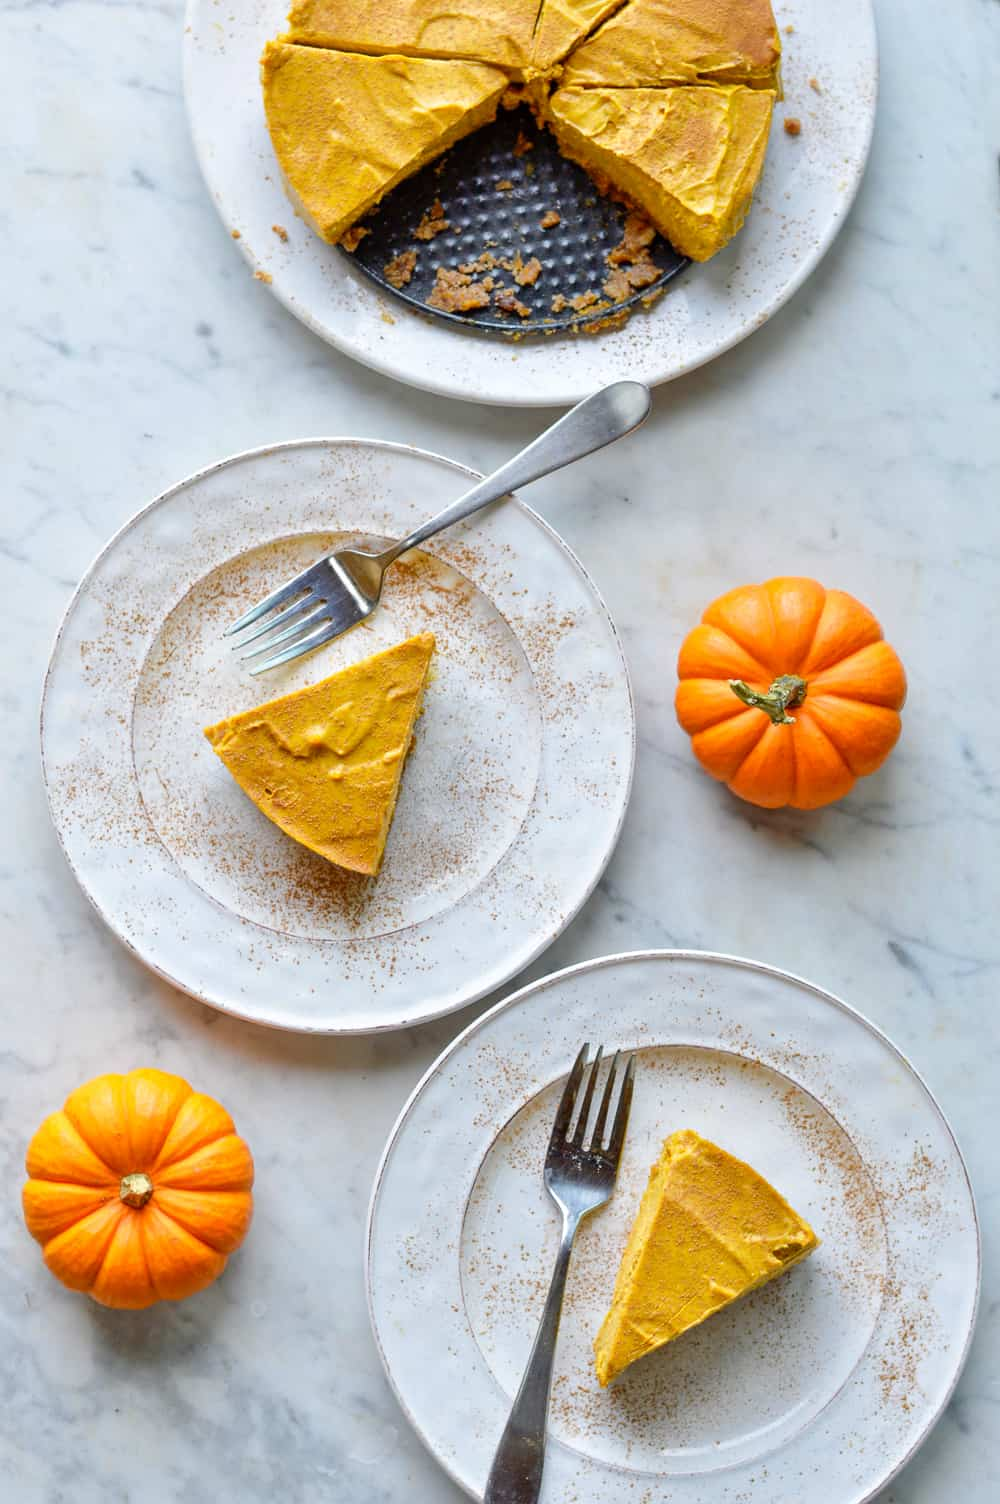 Creamy Paleo Pumpkin Cheesecake over view